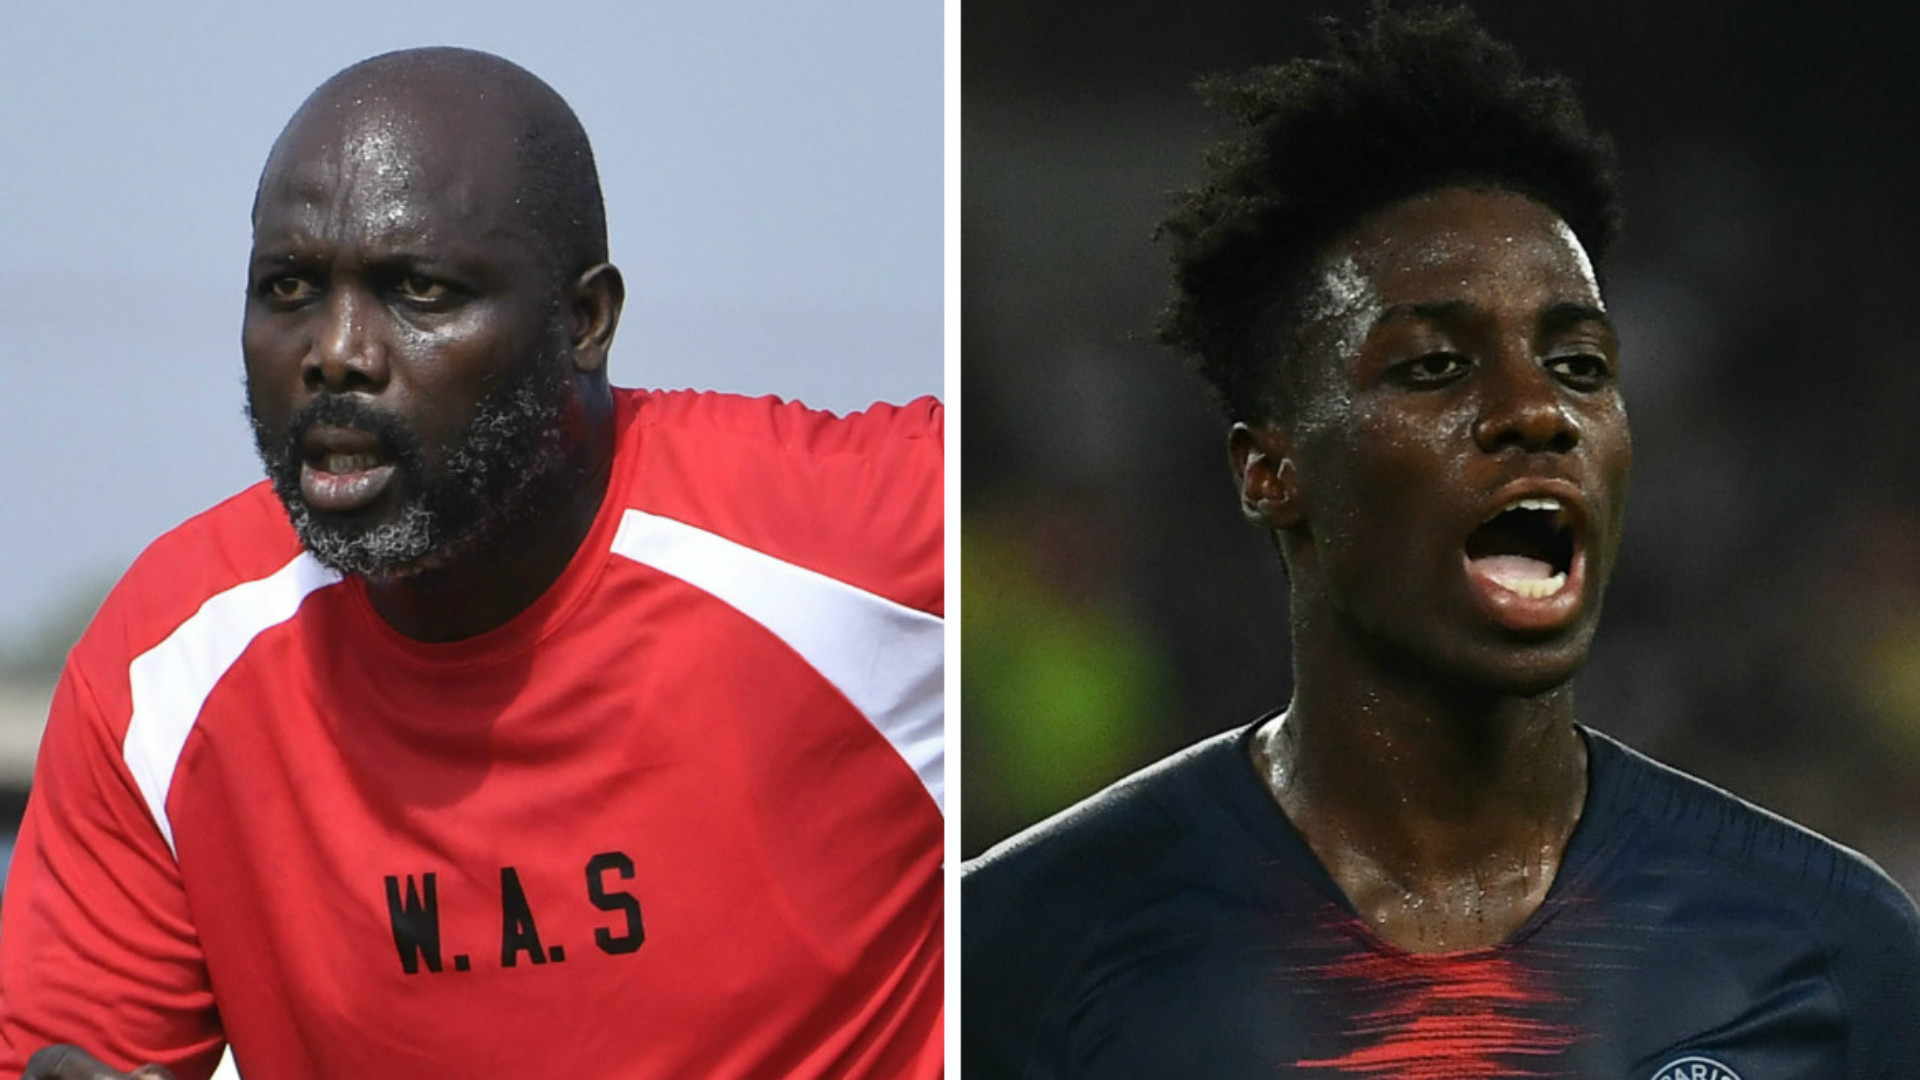 President George Weah plays for Liberia in Nigeria friendly